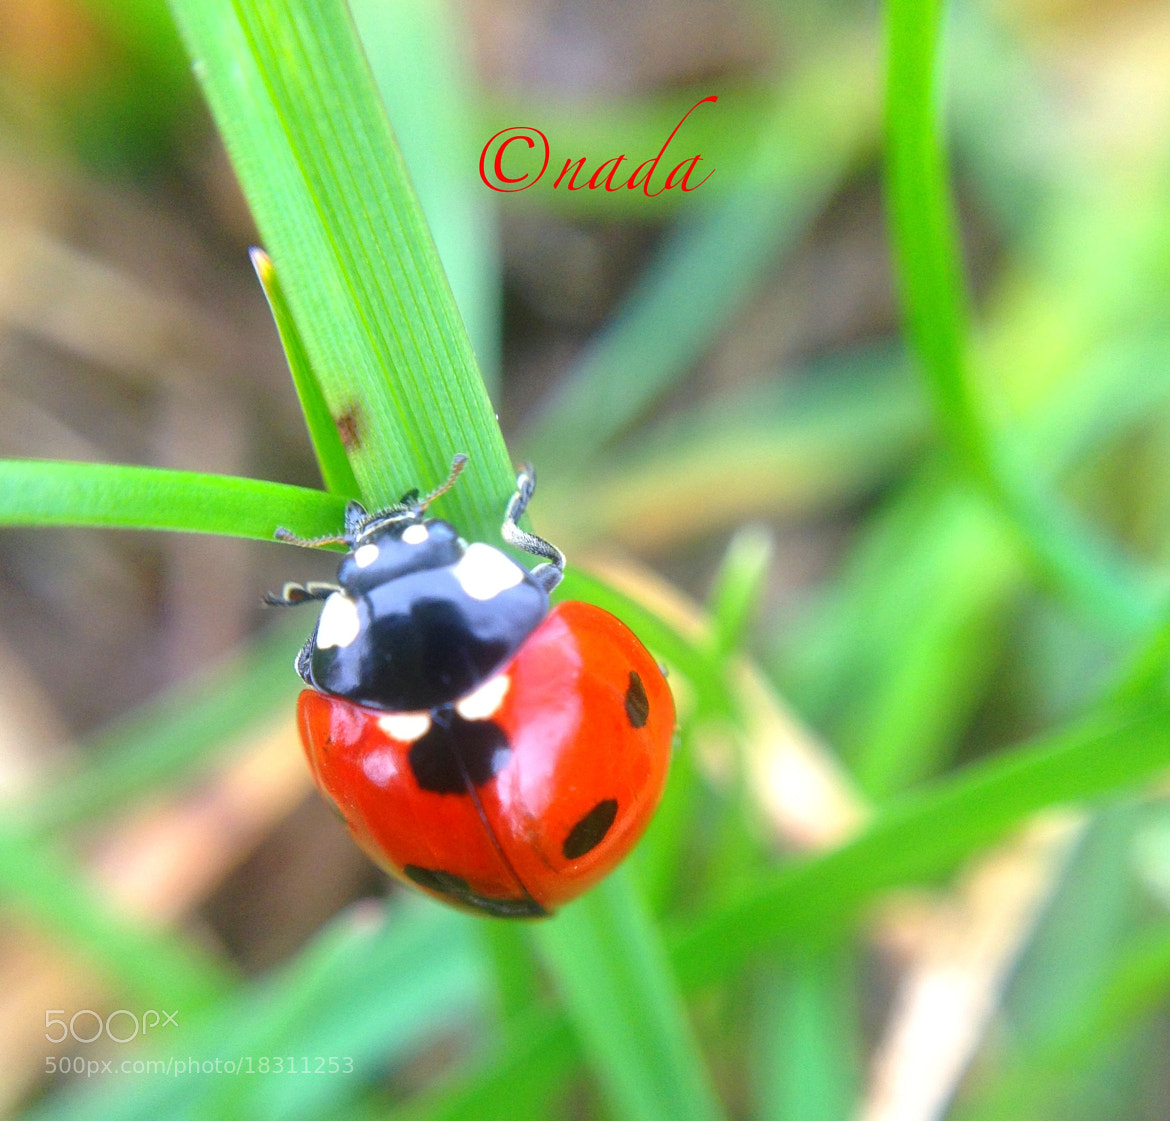 Photograph lady bug by Nada Leva on 500px